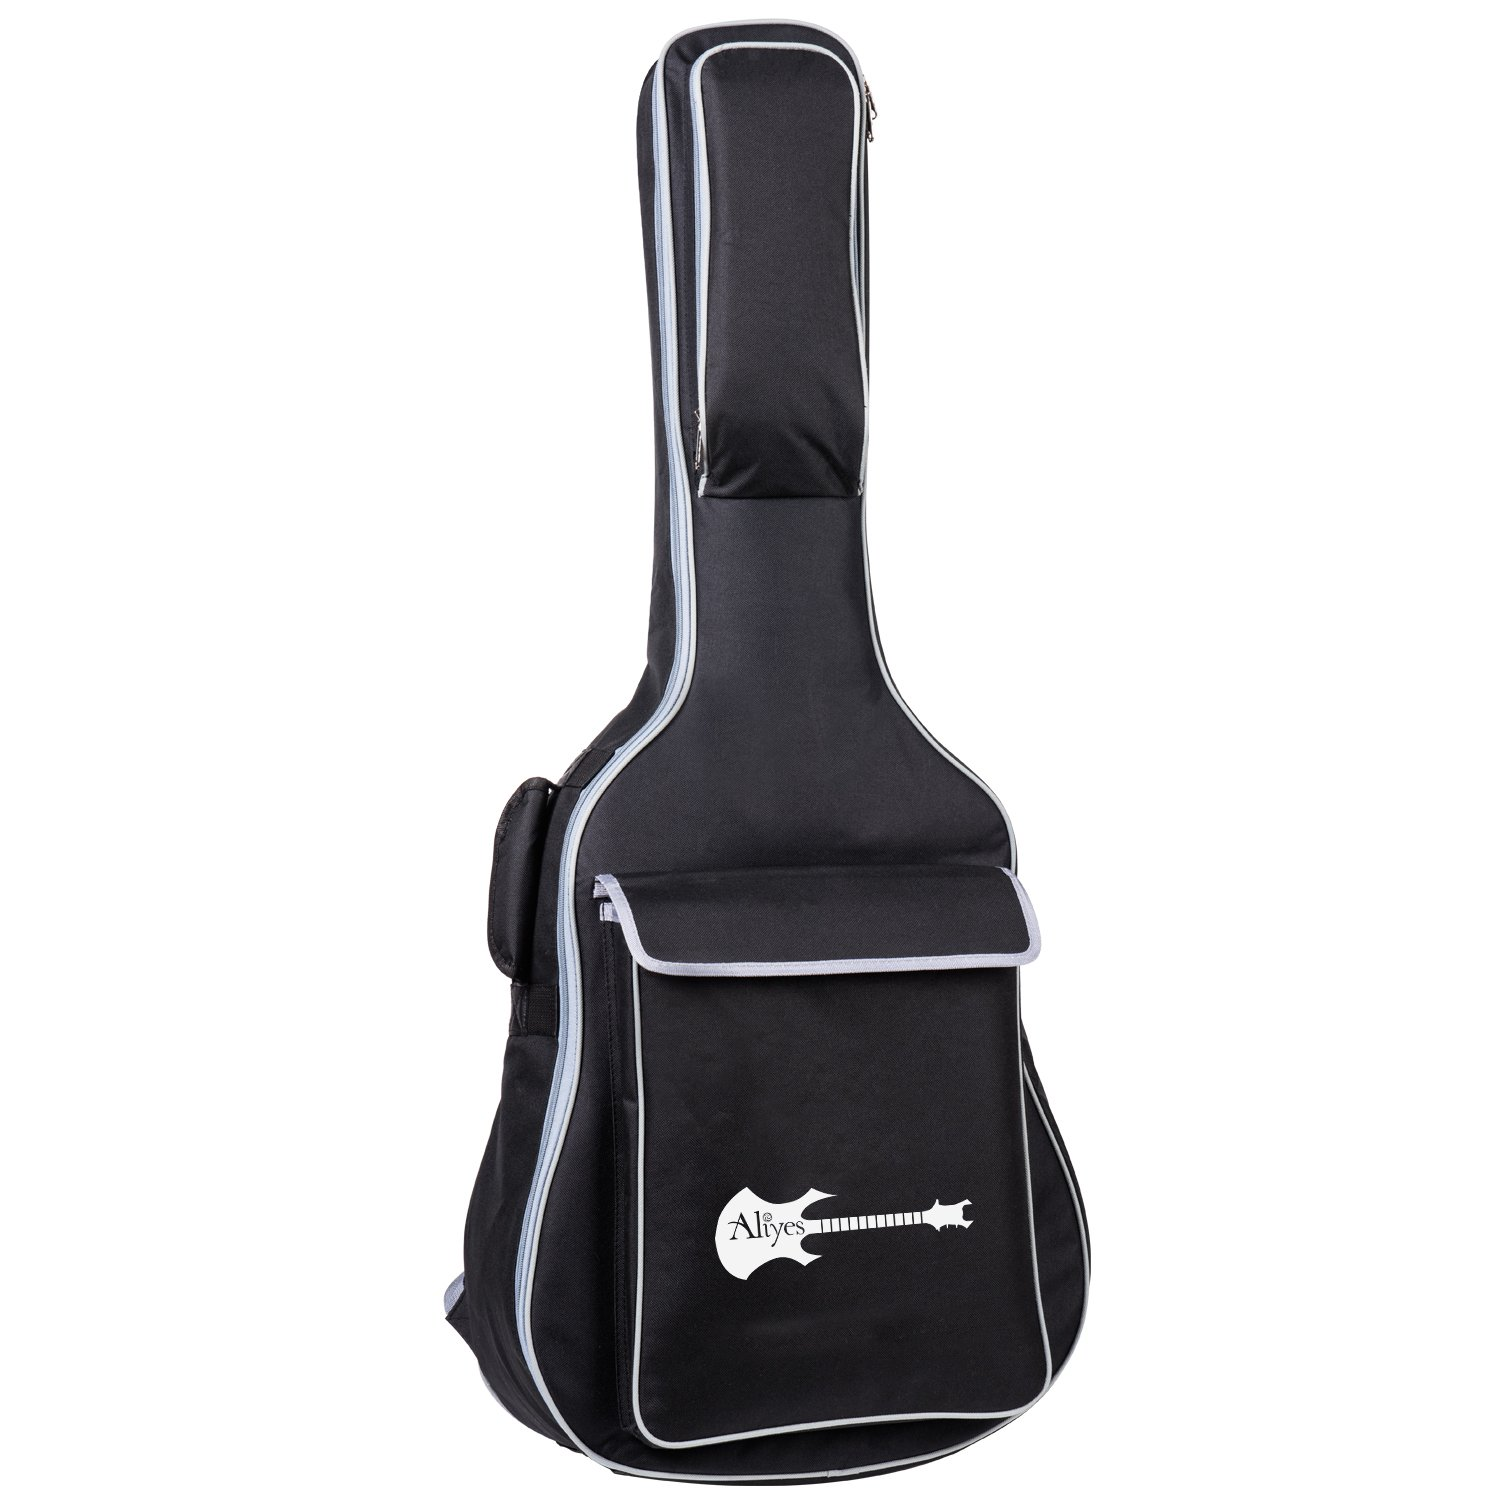 Aliyes Acoustic Class Guitar Gig Bag Full Size Metal Zippers Carrying Bag 41'' Water-Resistant Oxford Fabric 8mm Thick Sponge Padded Adjustable Strap Black